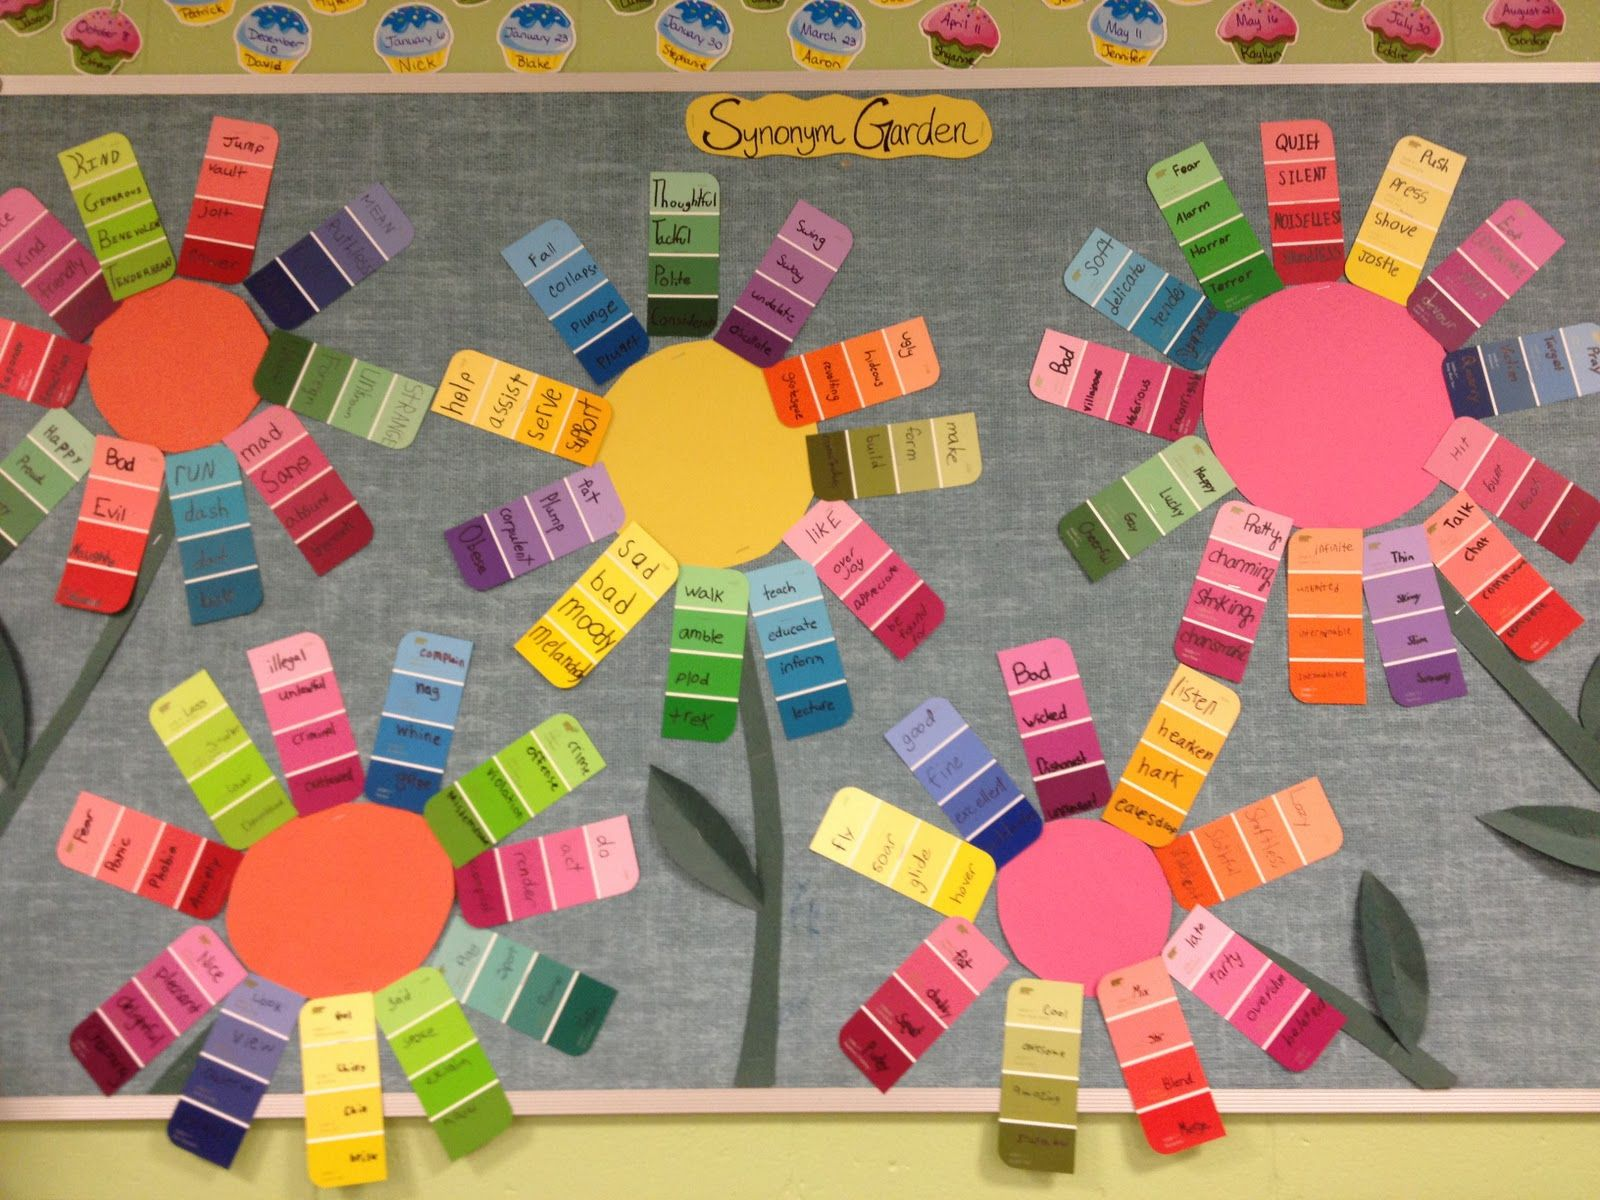 Bulletin board synonym garden using paint chips with quotboringquot words and new exciting thesaurus for Synonym of ideas